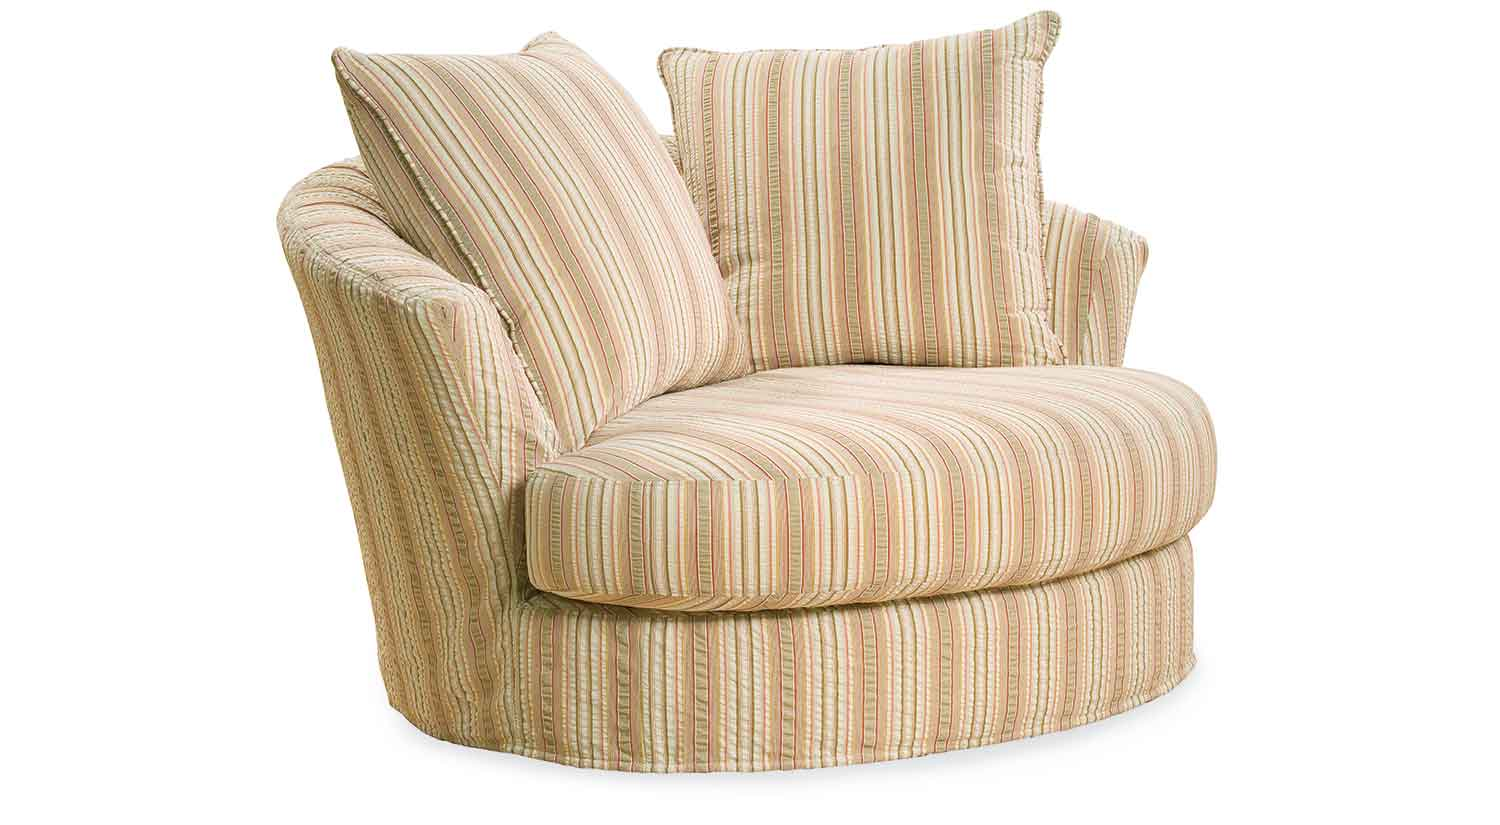 oversized round swivel chair striped fabric oversized round chair for accent living room